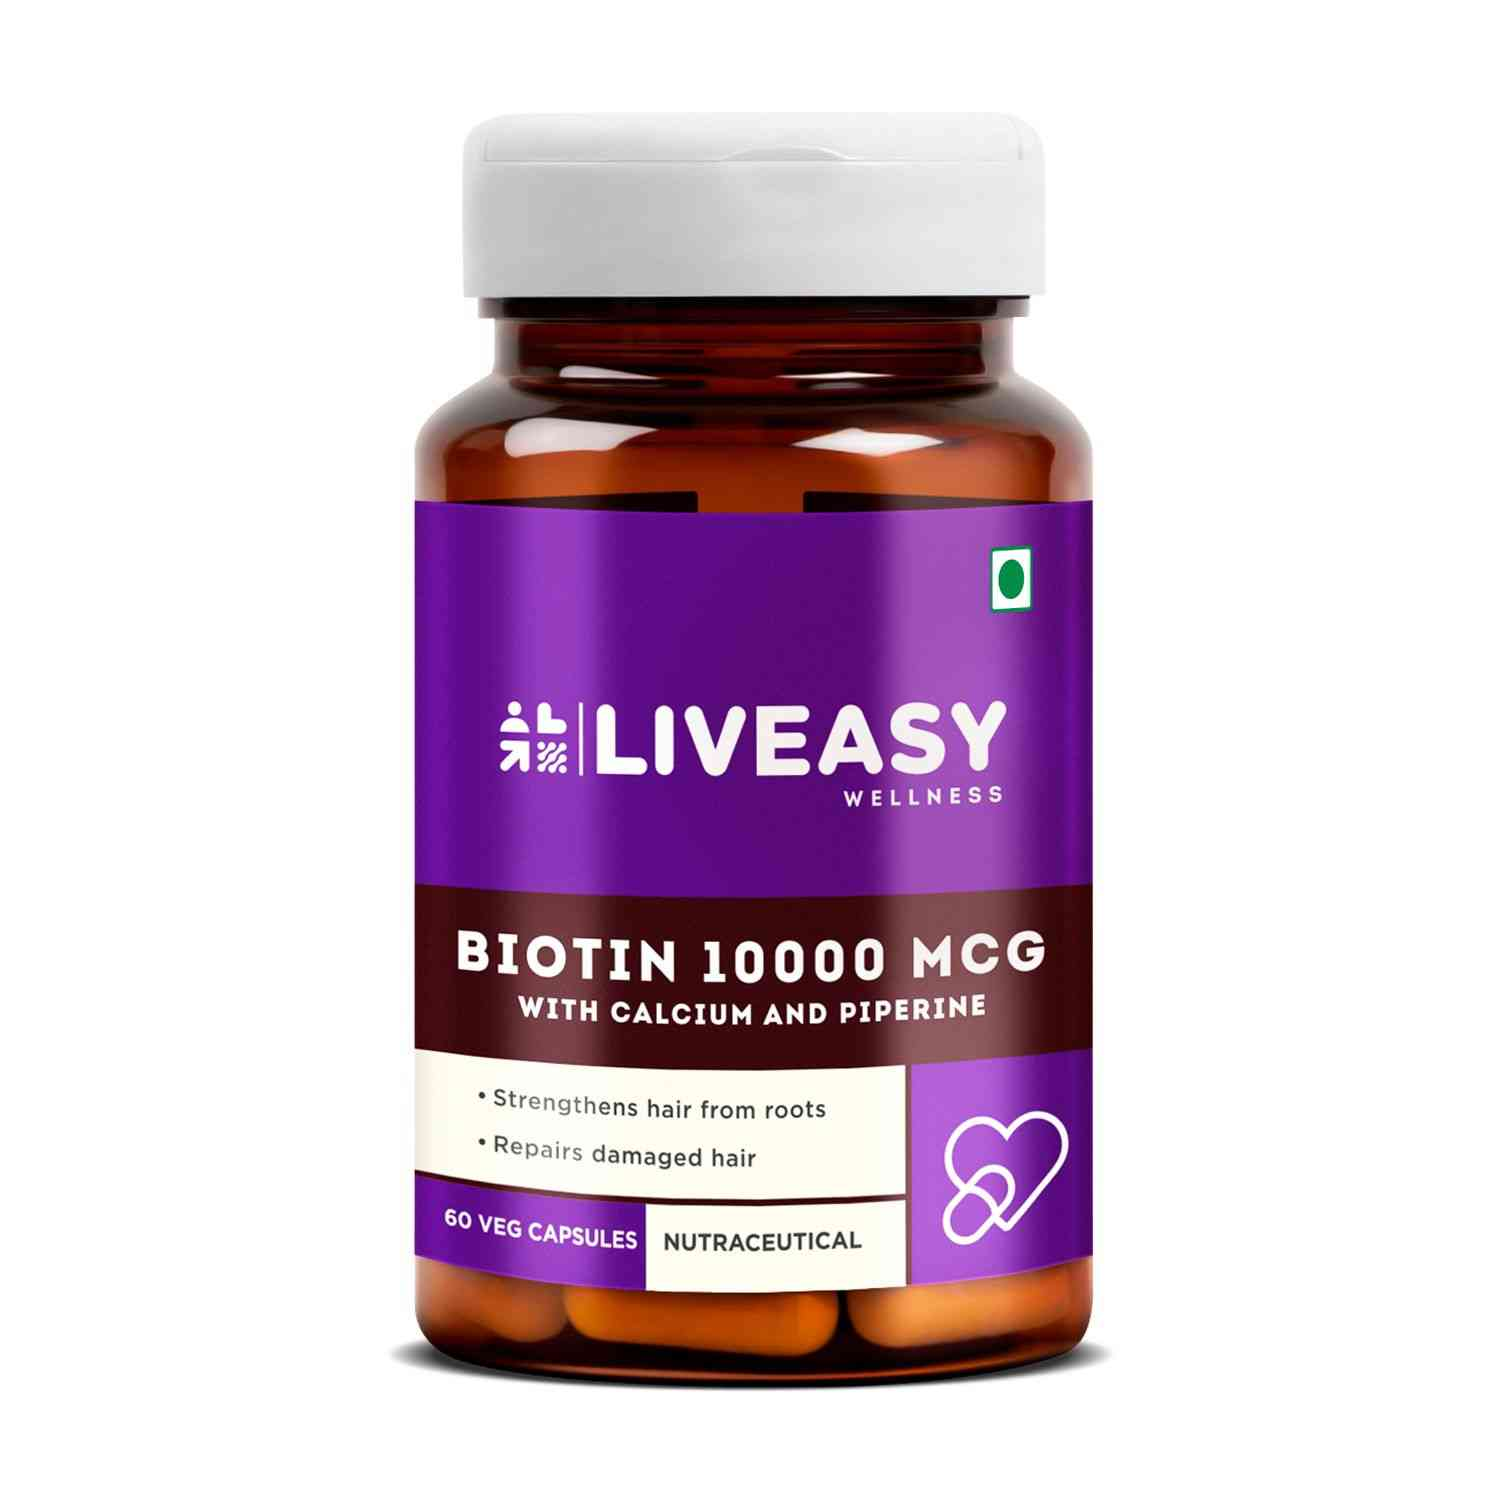 Liveasy Wellness Biotin 10000mcg With Calcium - Natural Protein For Hair - Prevents Hair Fall - Bottle Of 60